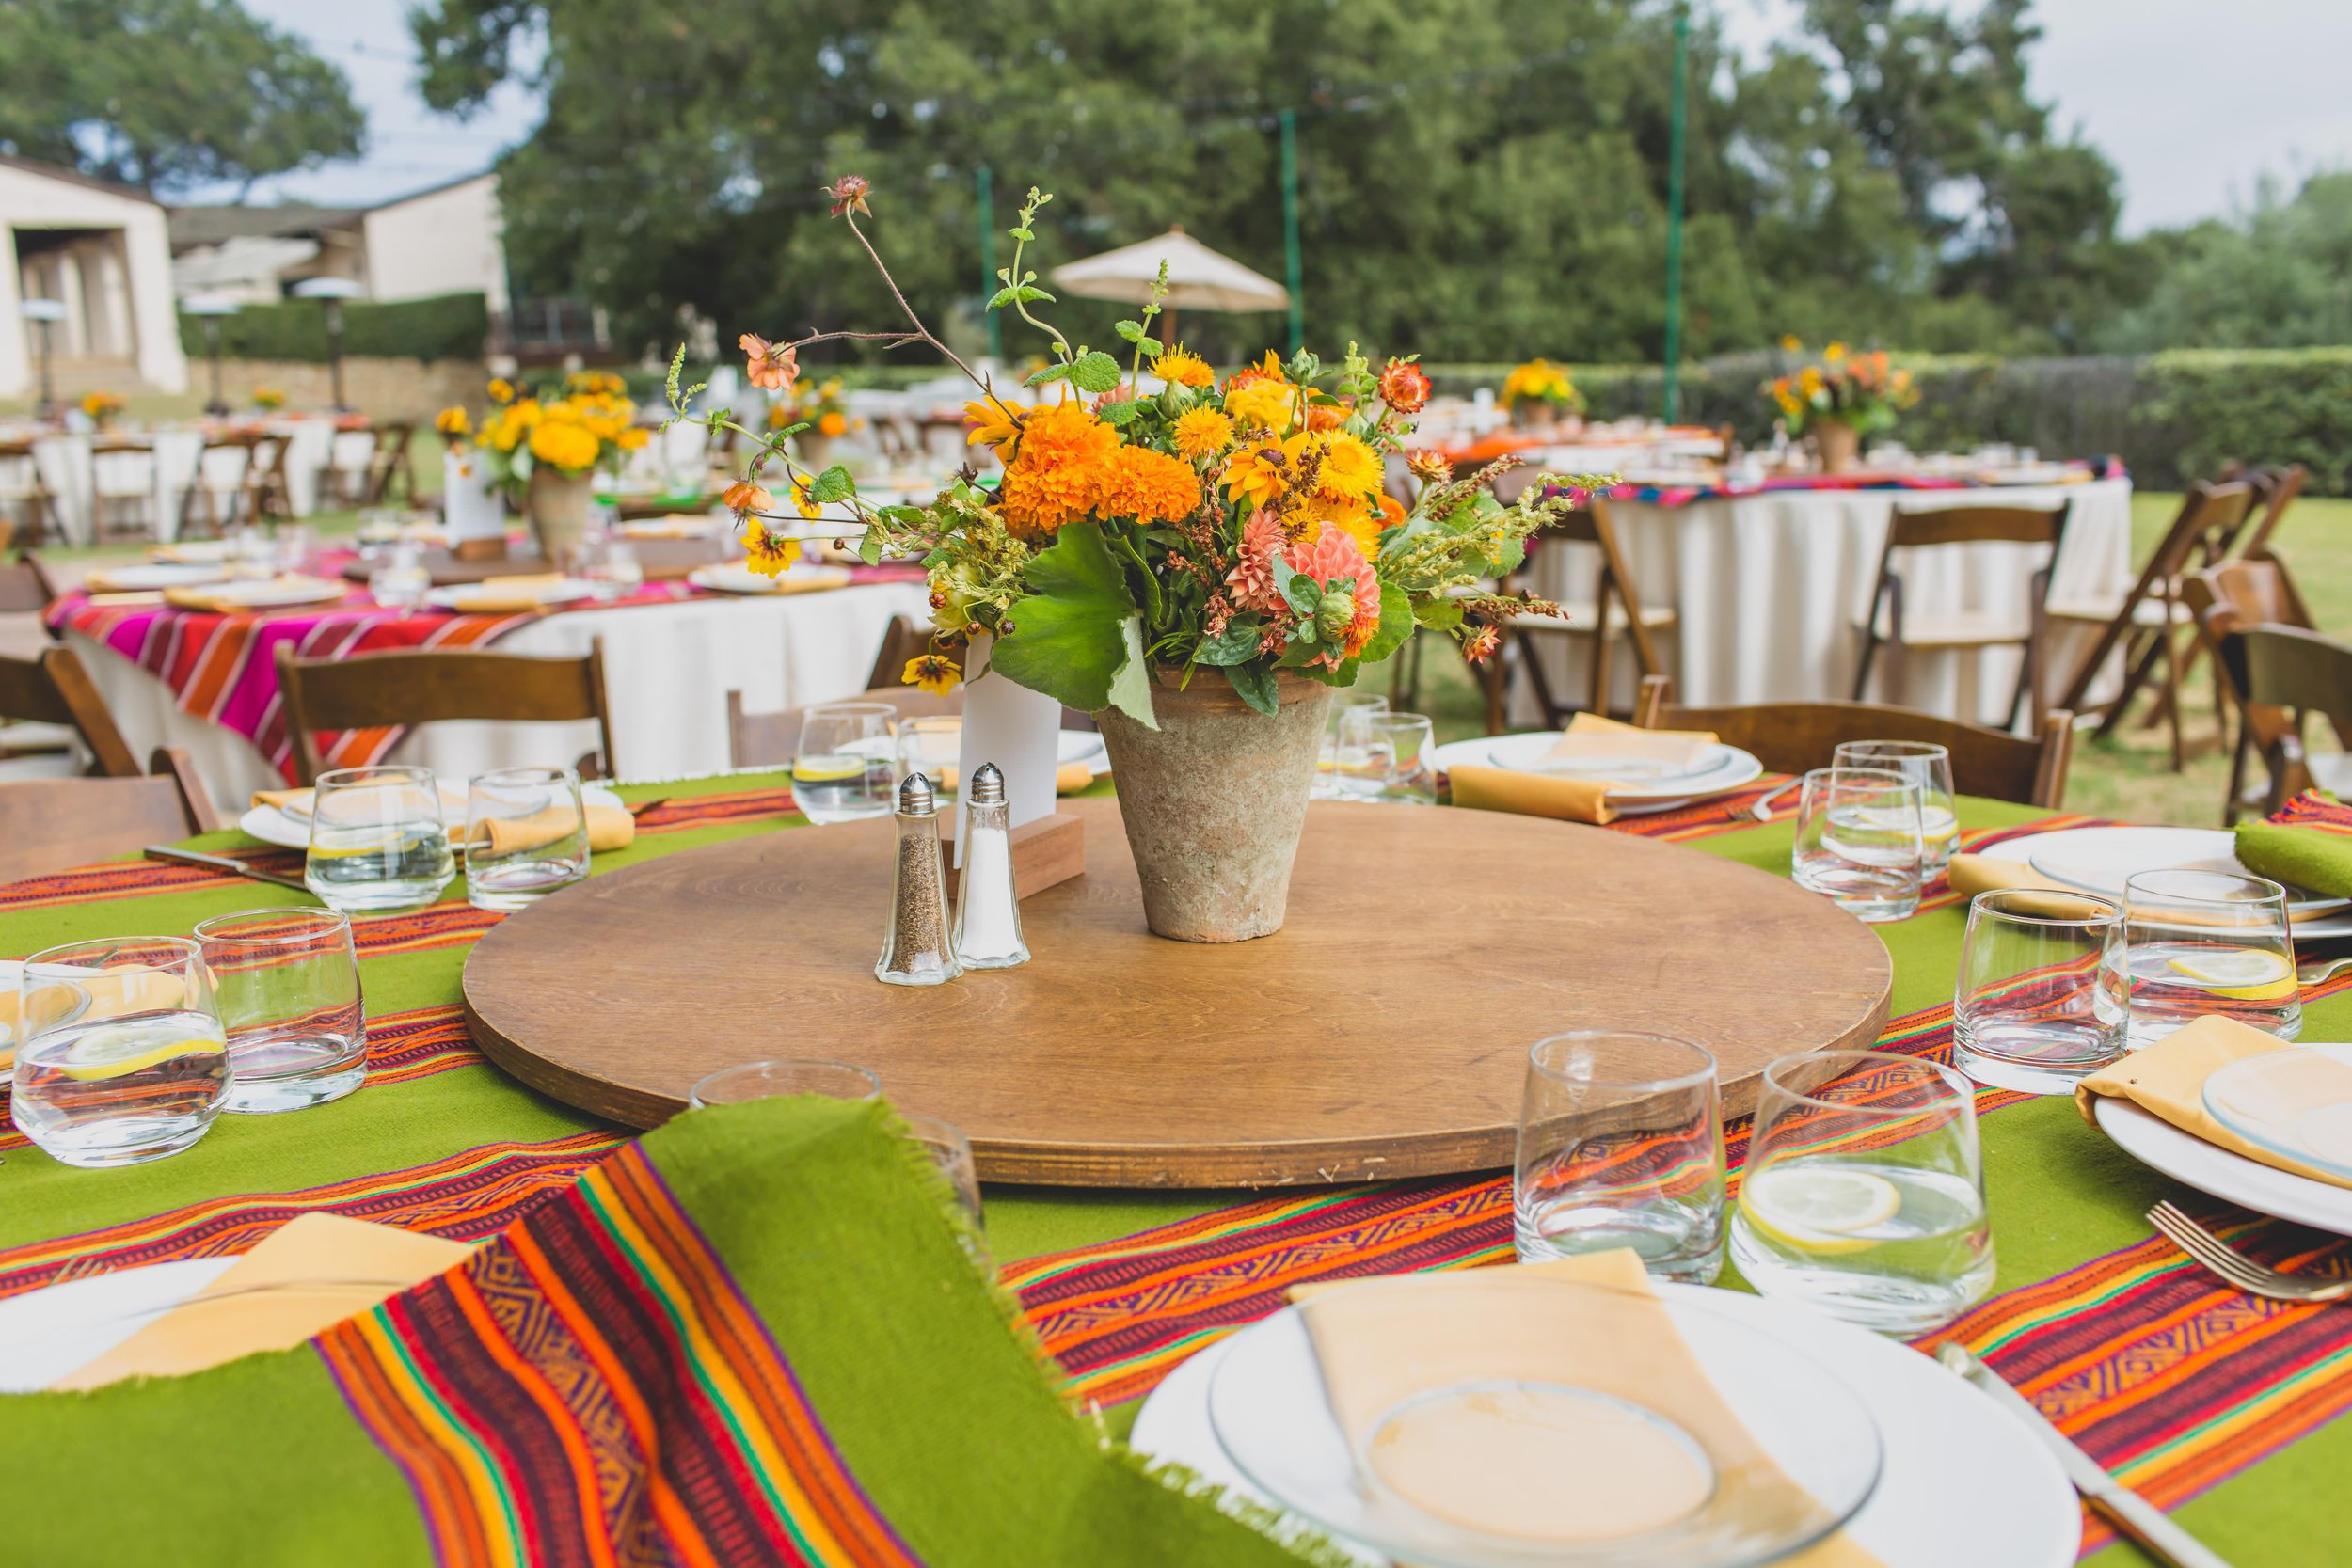 Wedding reception tables with cambaya tablecloths and wildflower centerpieces in stone vases.